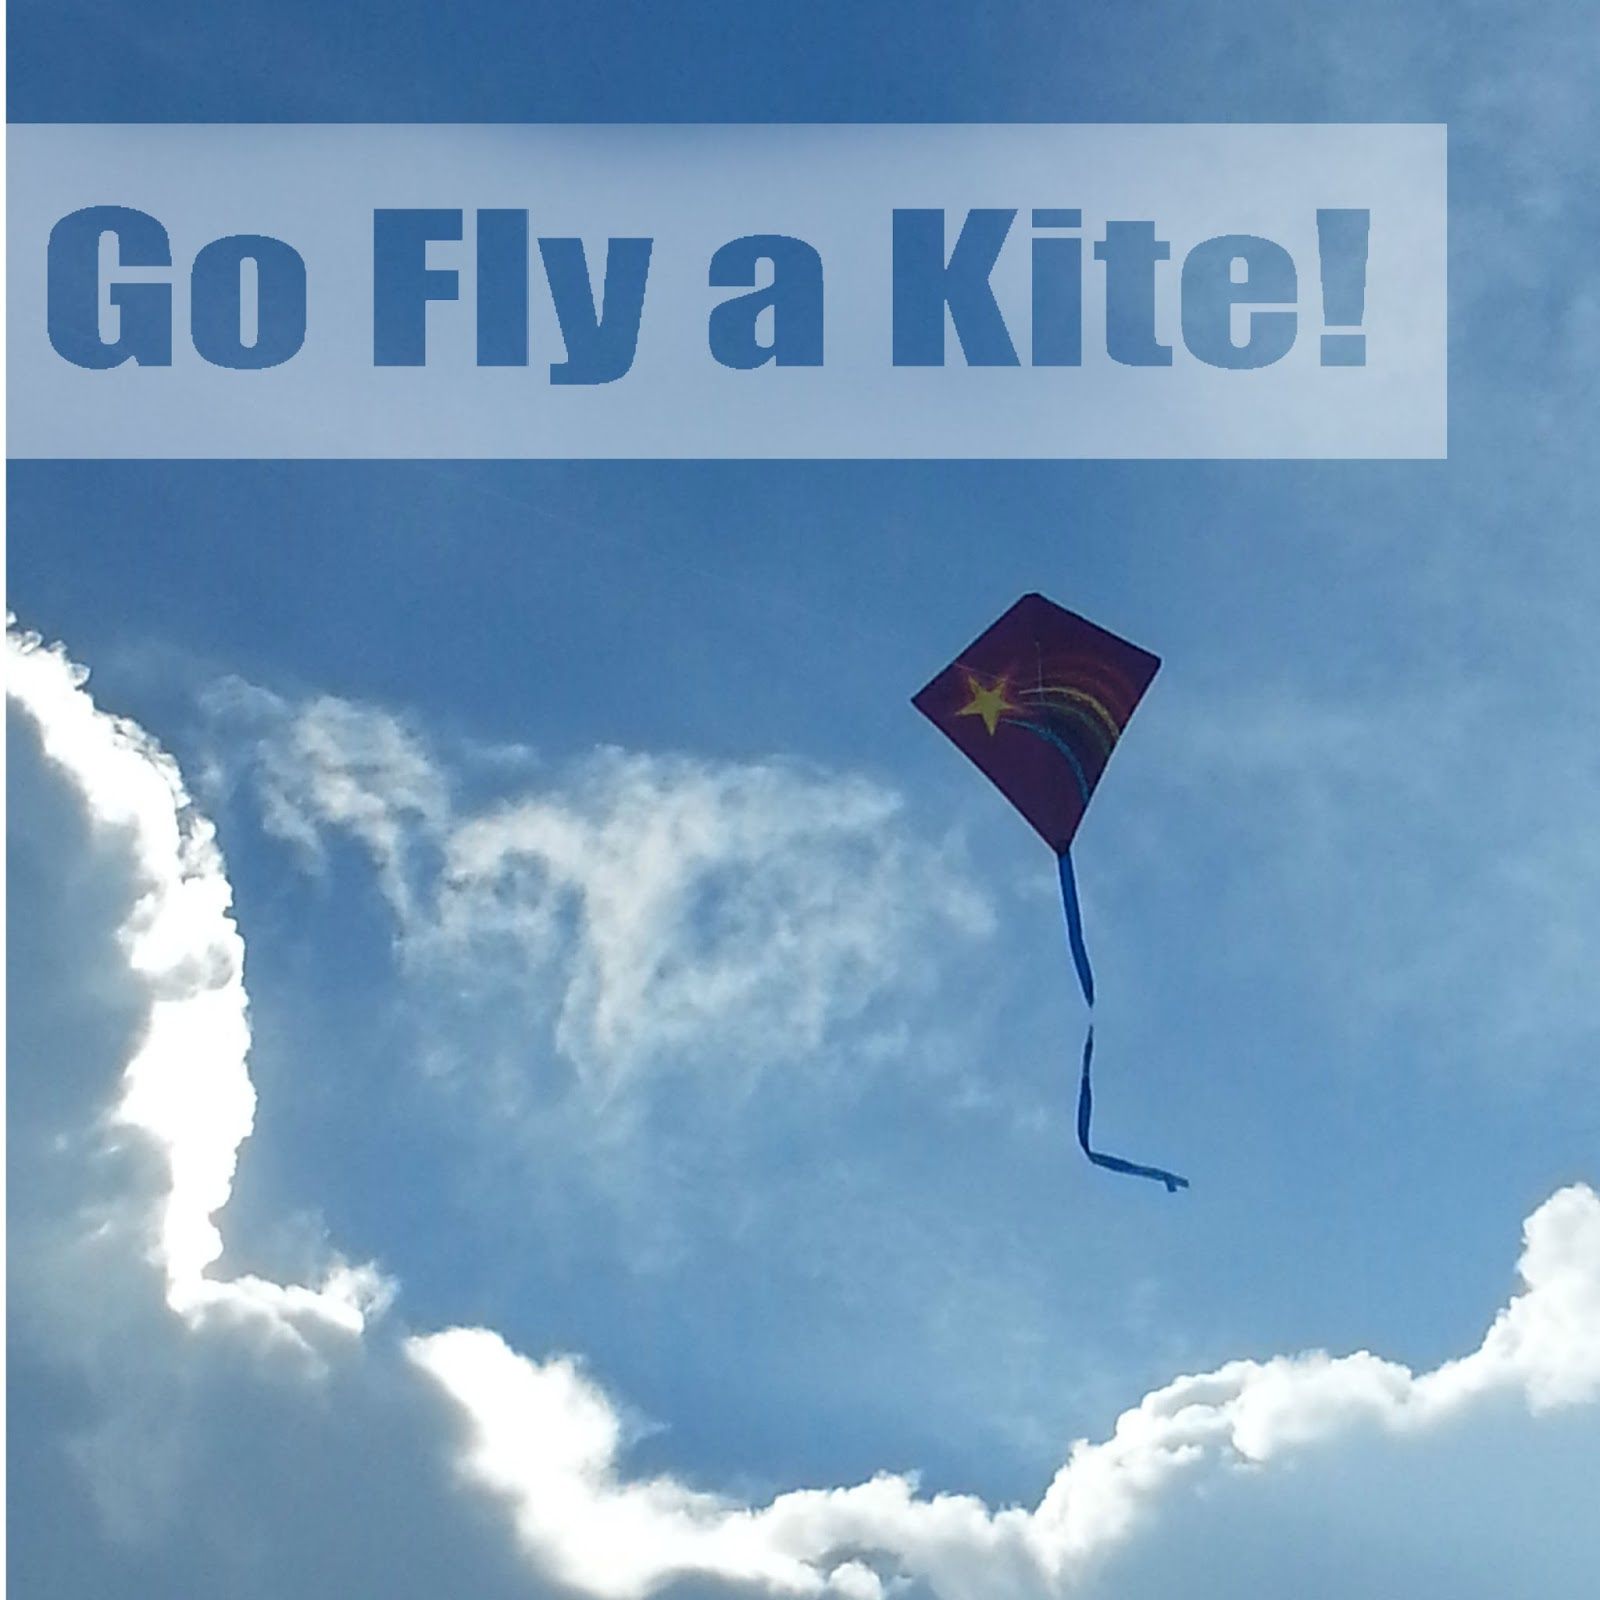 Apartment 203 Simple Things Go Fly A Kite